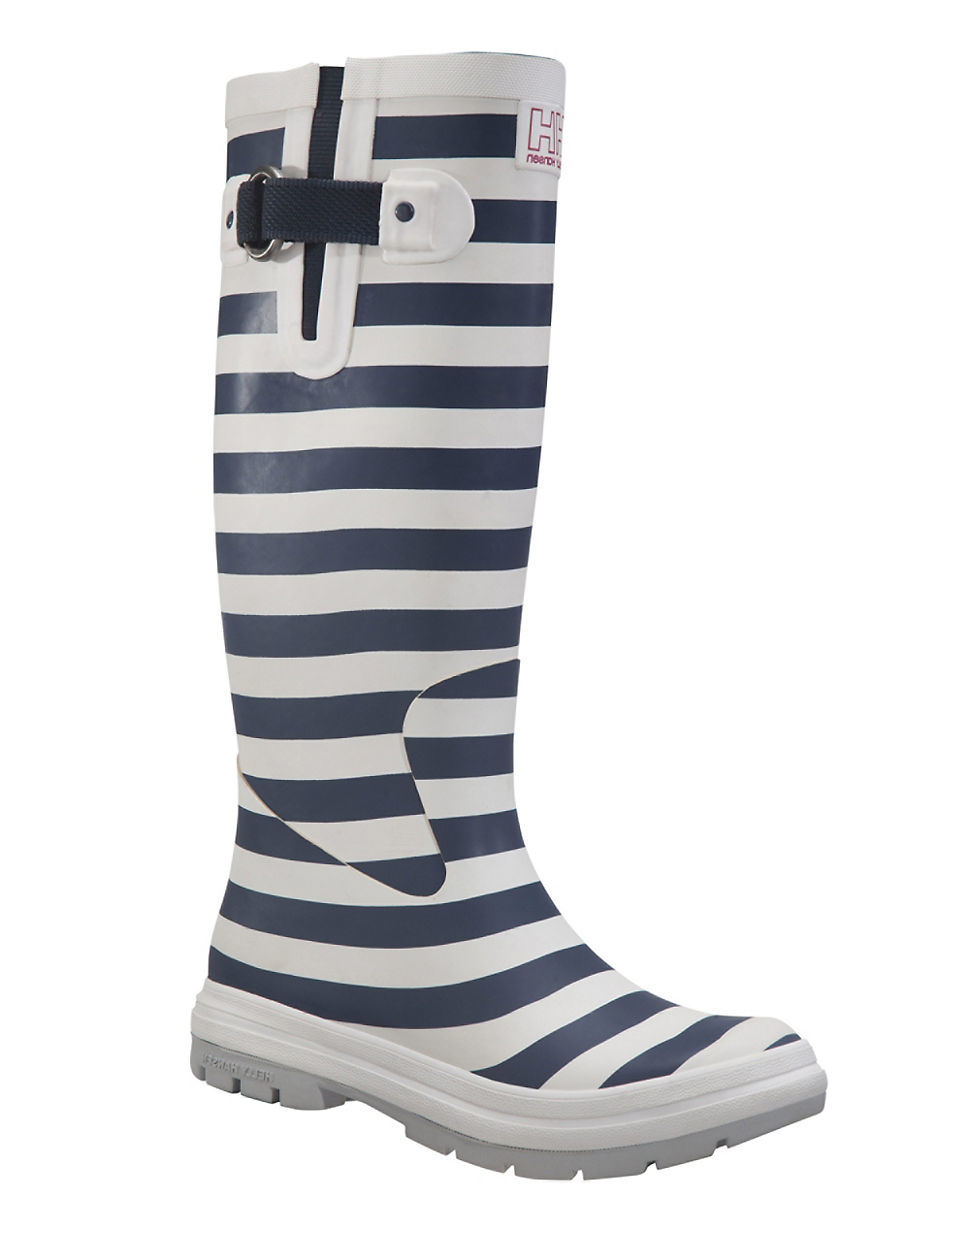 Helly hansen Veirland 2 Printed Rain Boots in Blue | Lyst